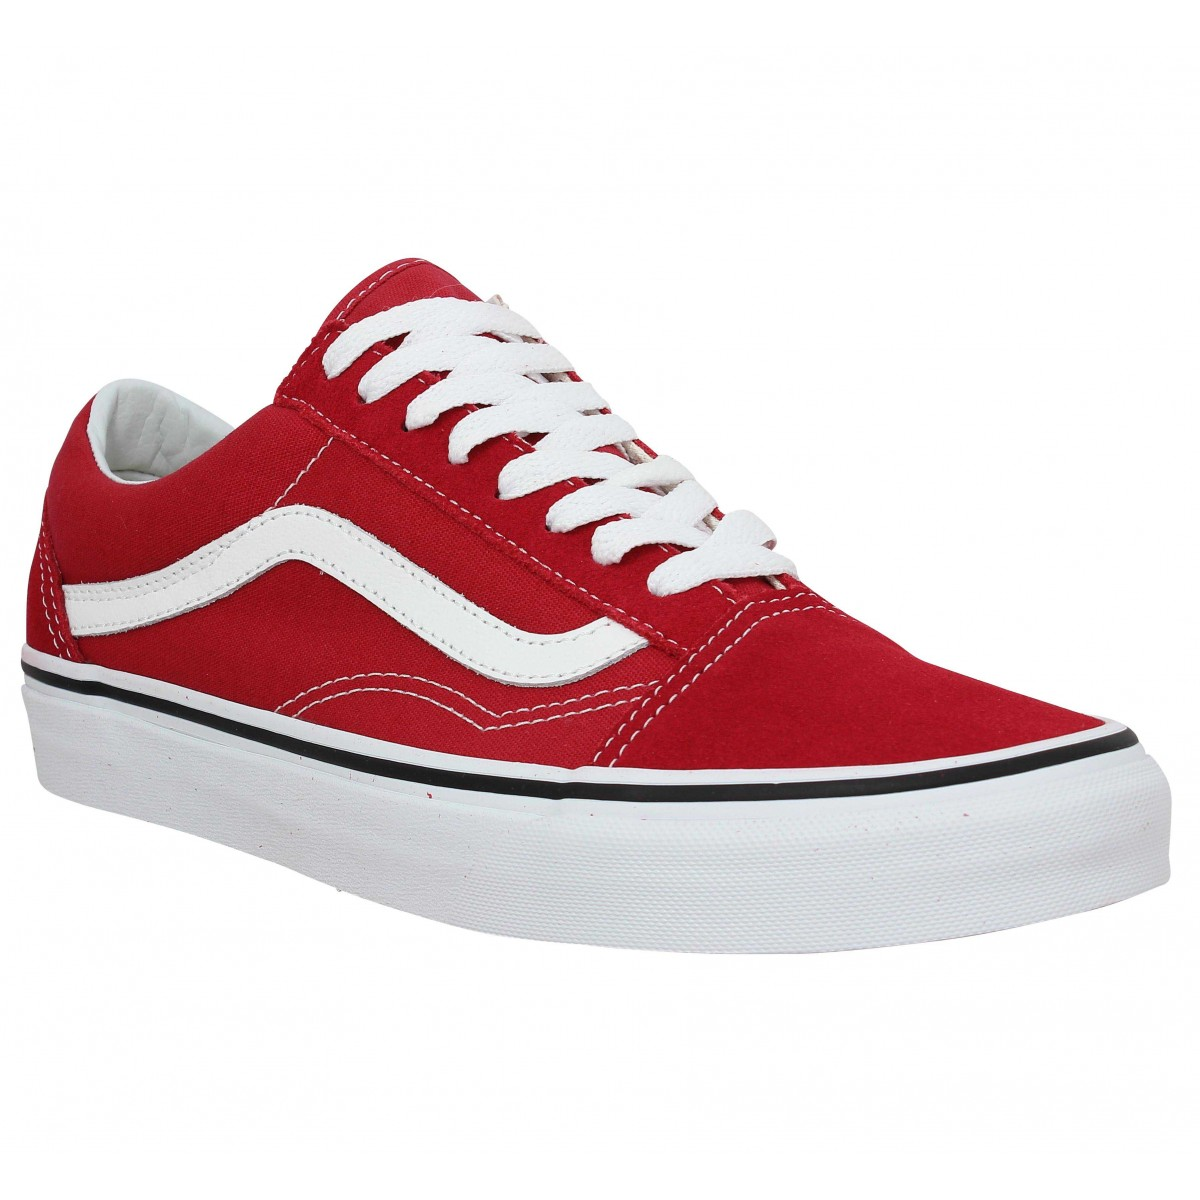 Baskets VANS Old Skool velours toile Crimson